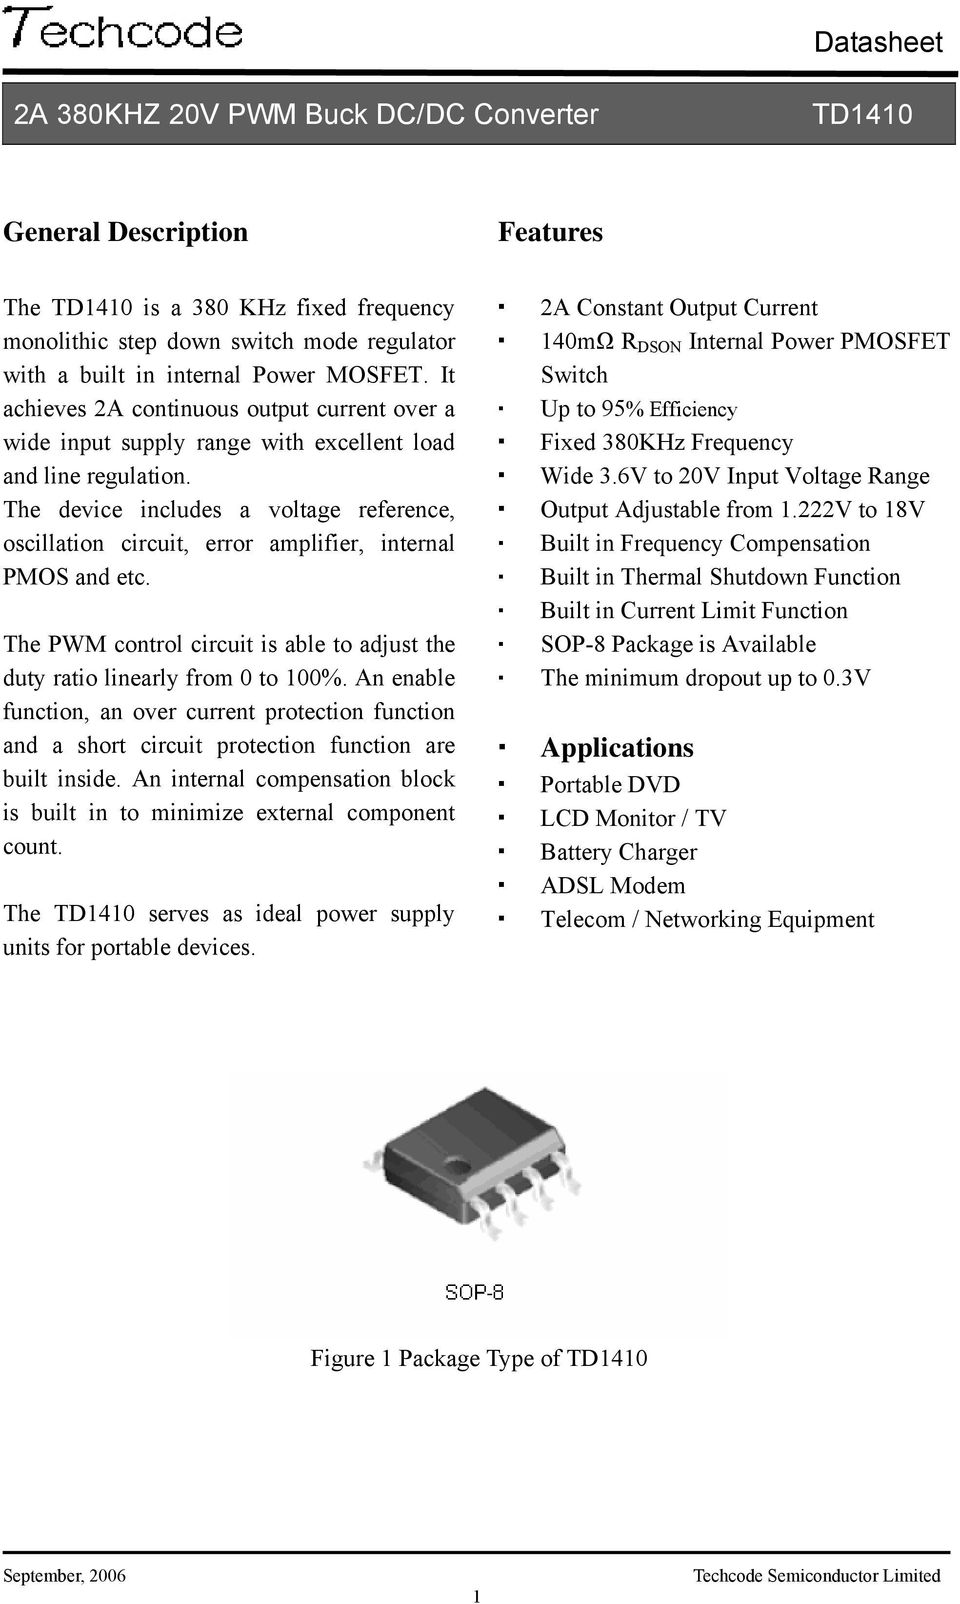 Datasheet 2a 380khz 20v Pwm Buck Dc Converter Features Pdf Of A Boost With External Mosfet For Short Circuit Protection The Device Includes Voltage Reference Oscillation Error Amplifier Internal Pmos And